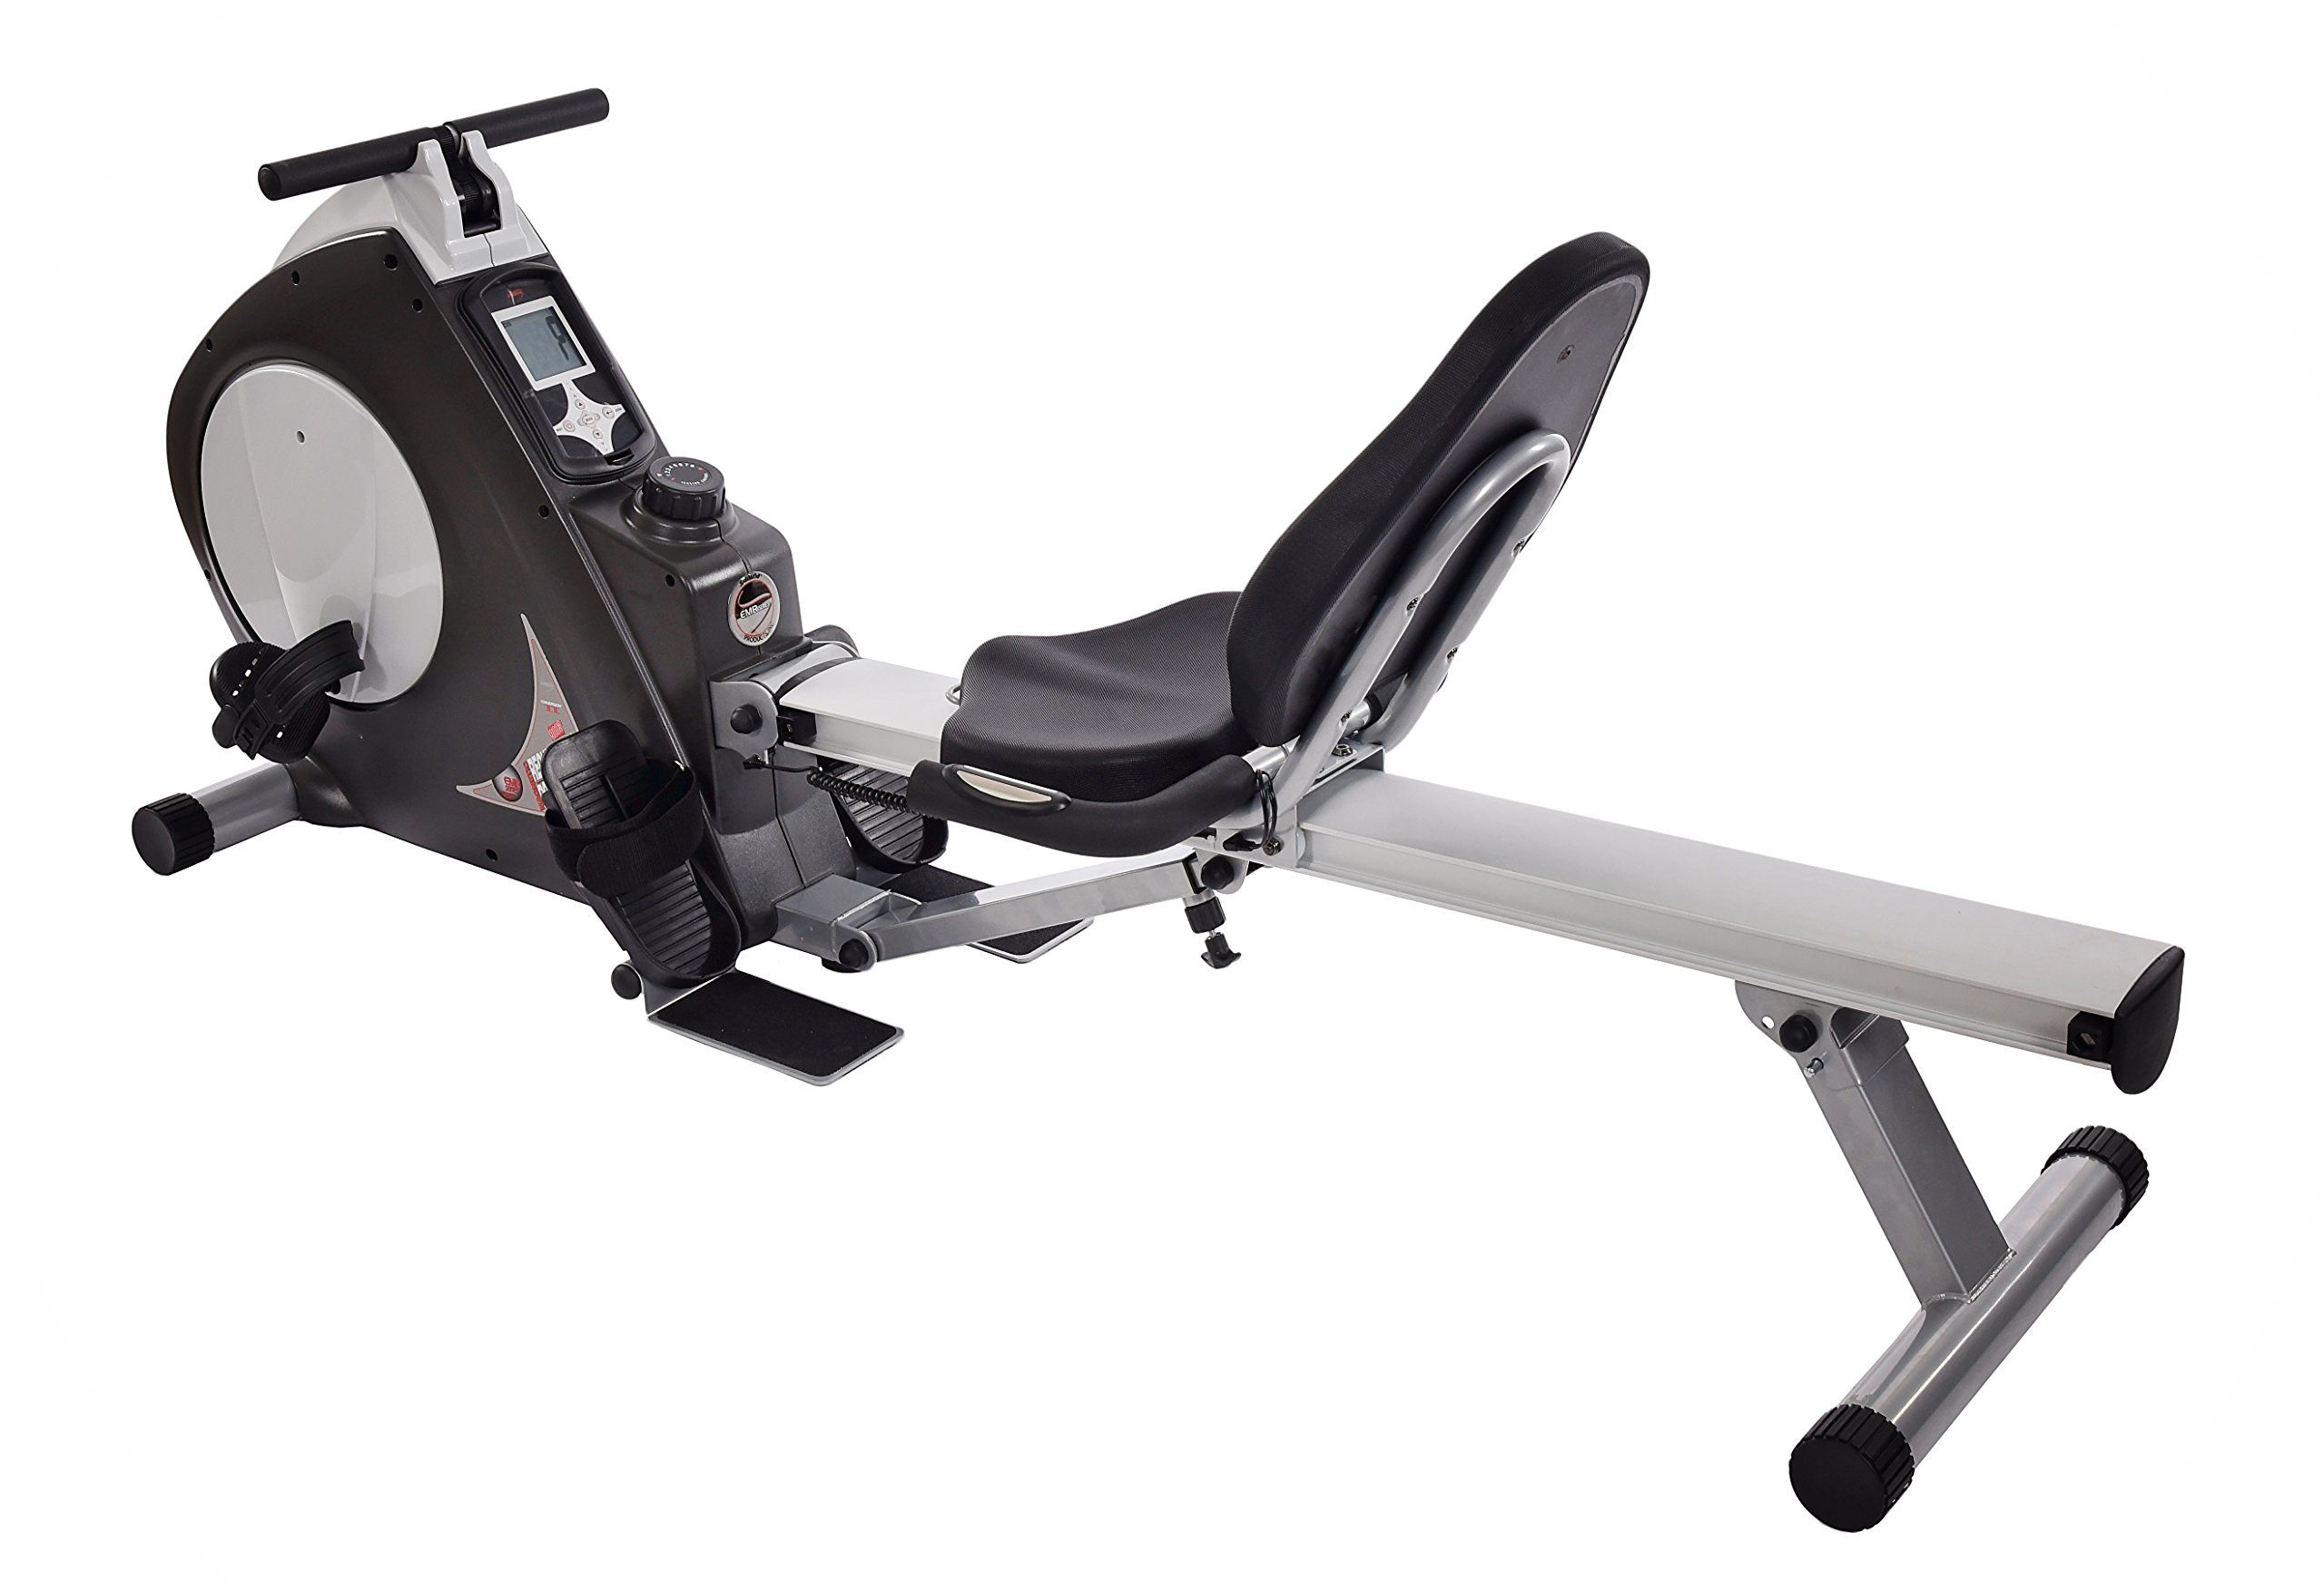 Stamina Conversion Ii Recumbent Exercise Bike Rower To View Additionally For This Item See The Phot Recumbent Bike Workout Biking Workout Workout Machines